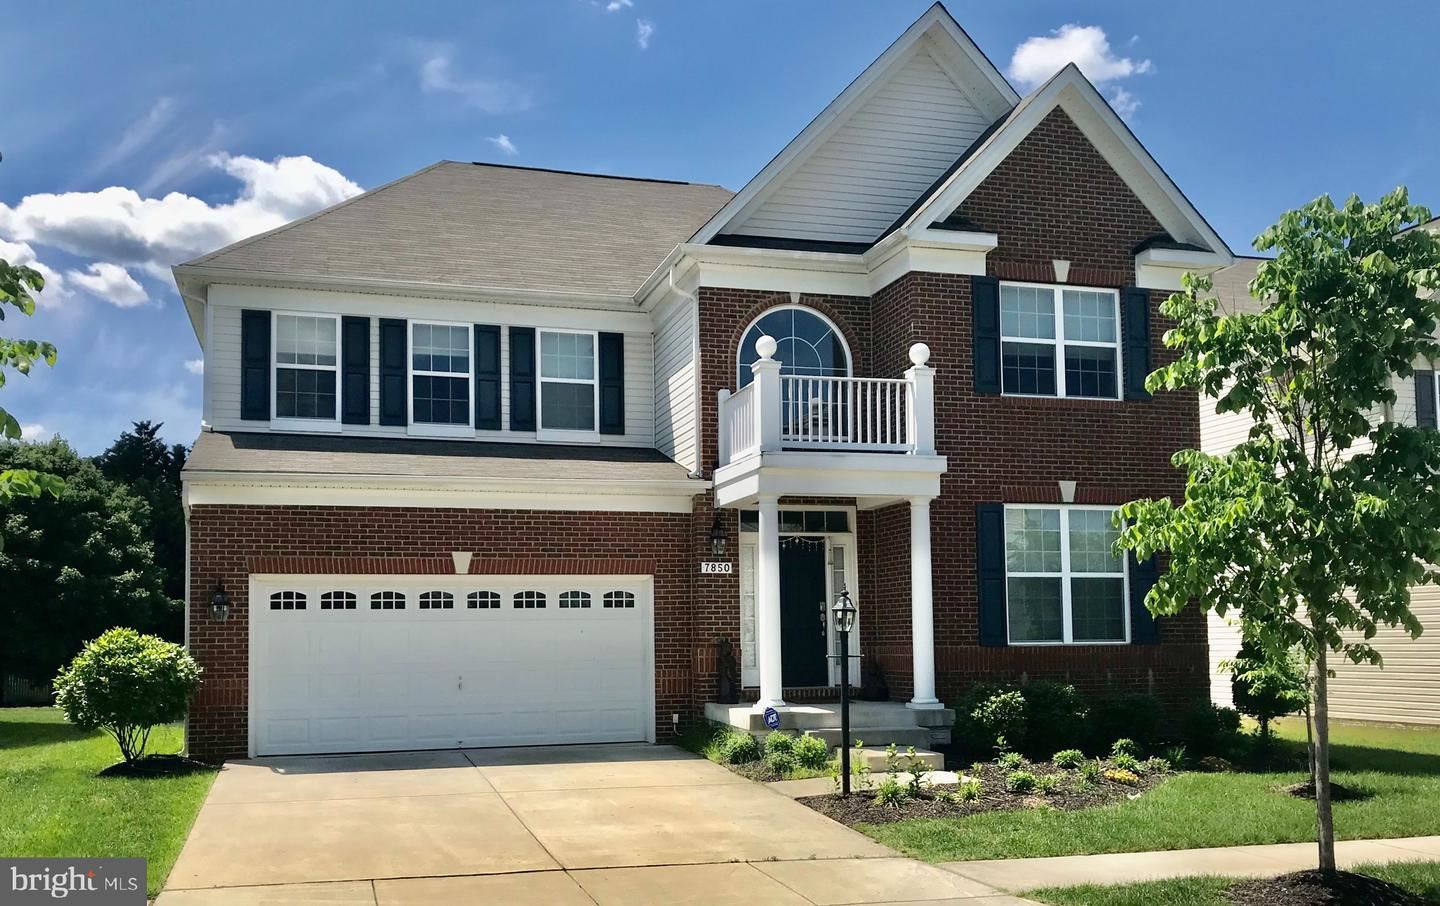 7850 SUNHAVEN WAY, Severn, MD 21144 - MLS#: MDAA467164